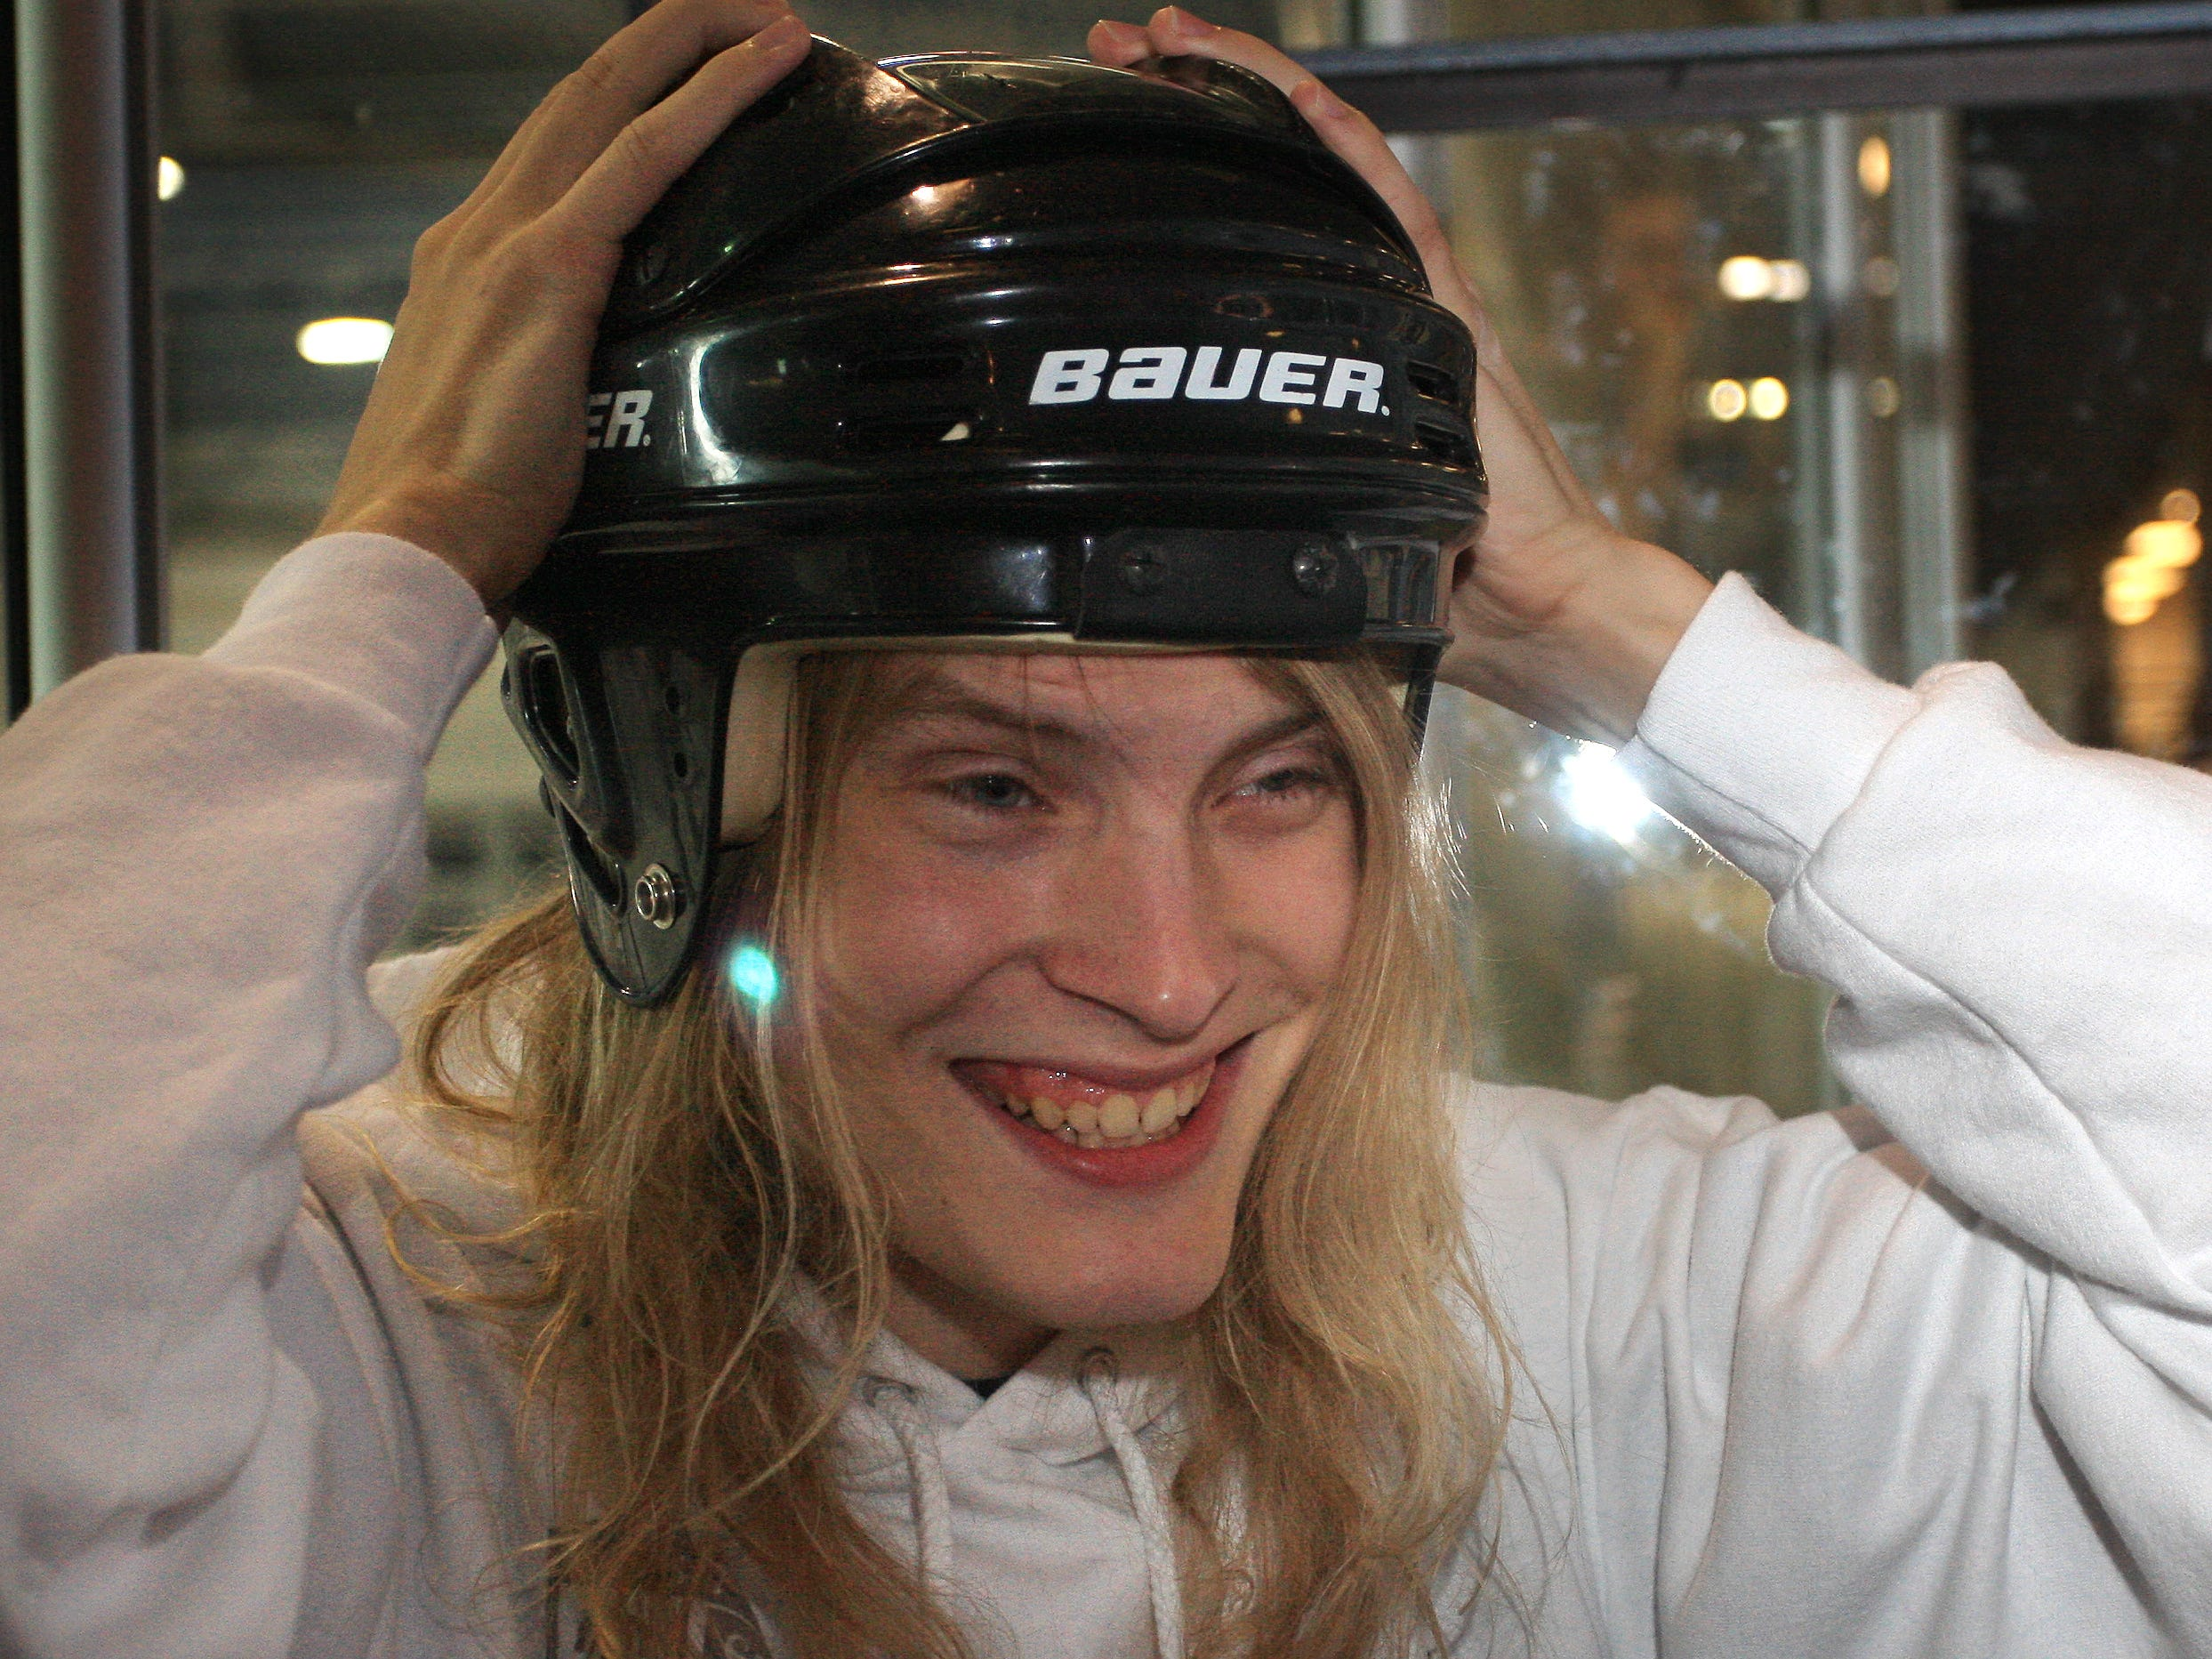 Drury freshman Taylor Smith puts on helmet to join his first-time broomball at Mediacom Ice Park.